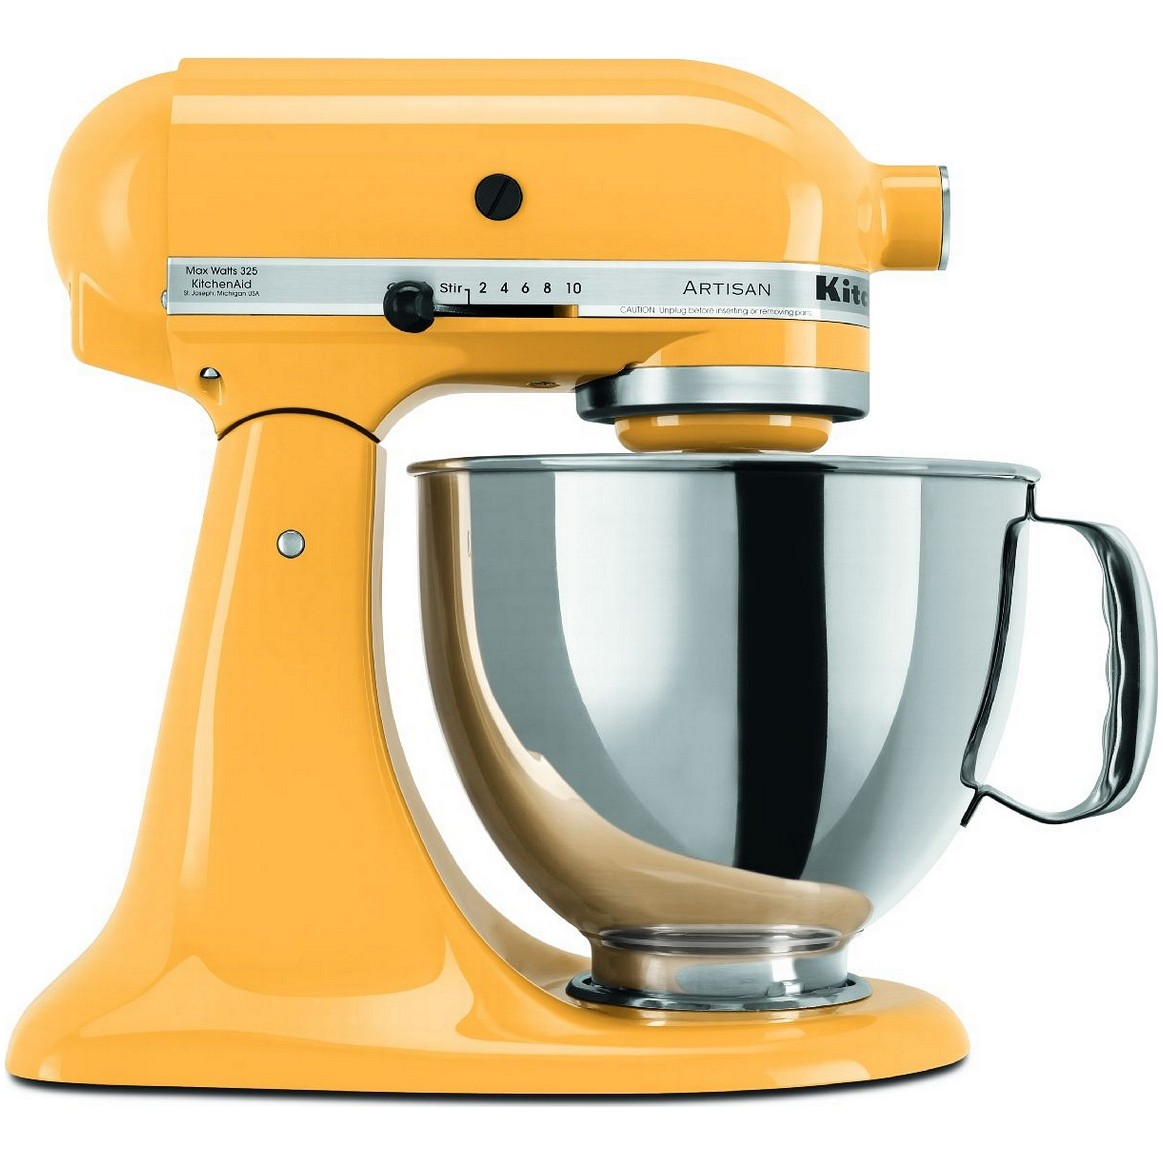 kitchenaid artisan stand mixer yellow pepper the great american